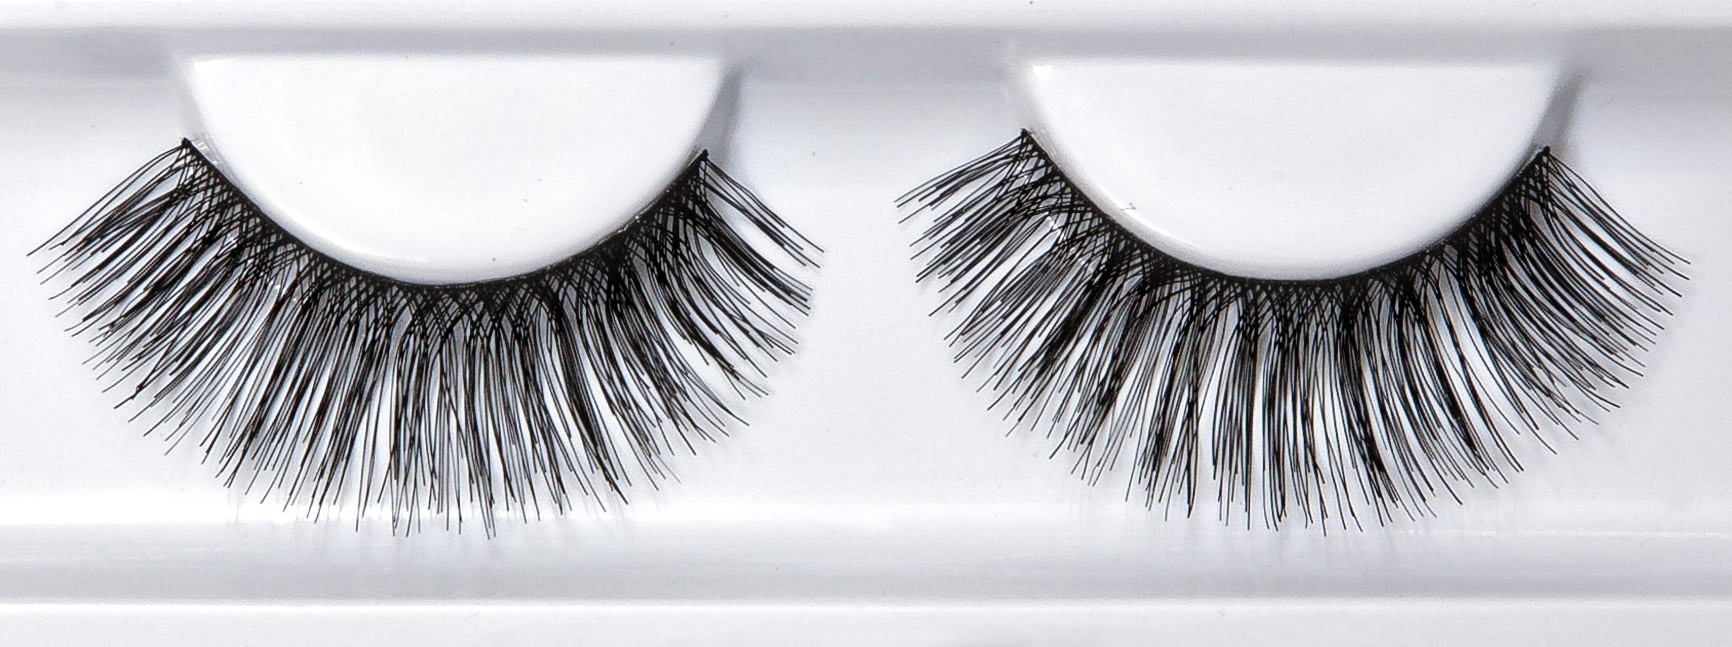 CU of fake eyelashes